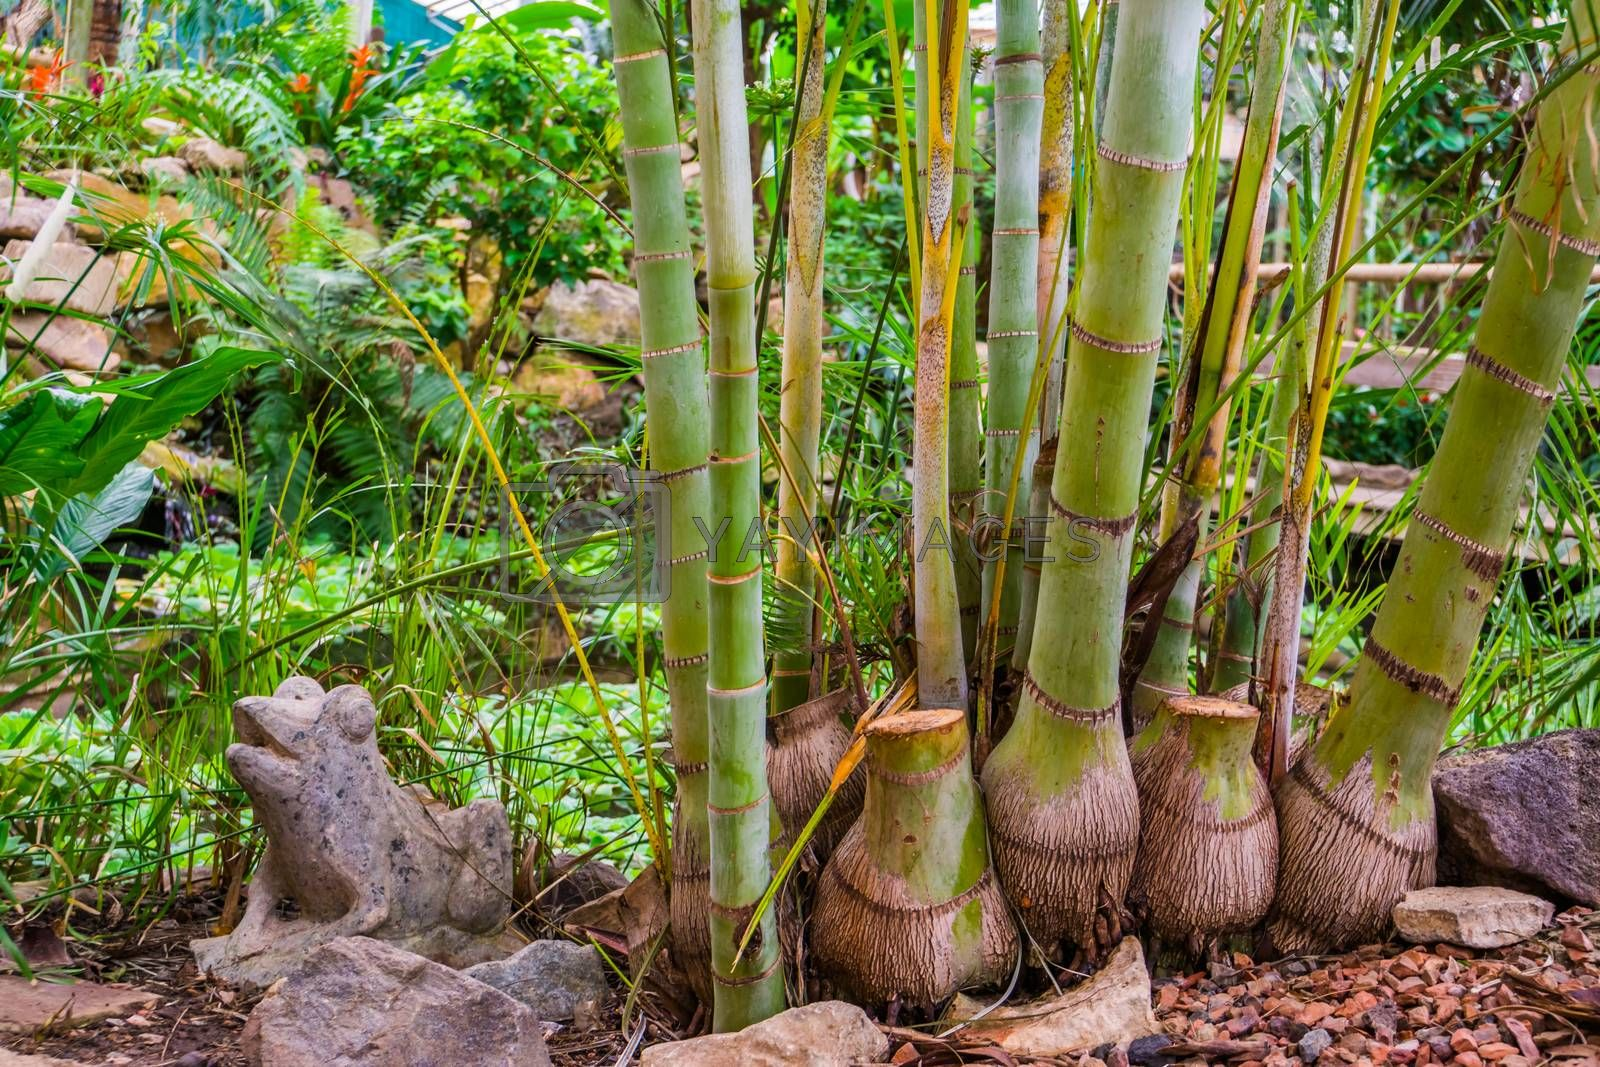 bamboo trunks of a giant bamboo specie, popular tropical plants and trees for the garden by charlotte Bleijenberg